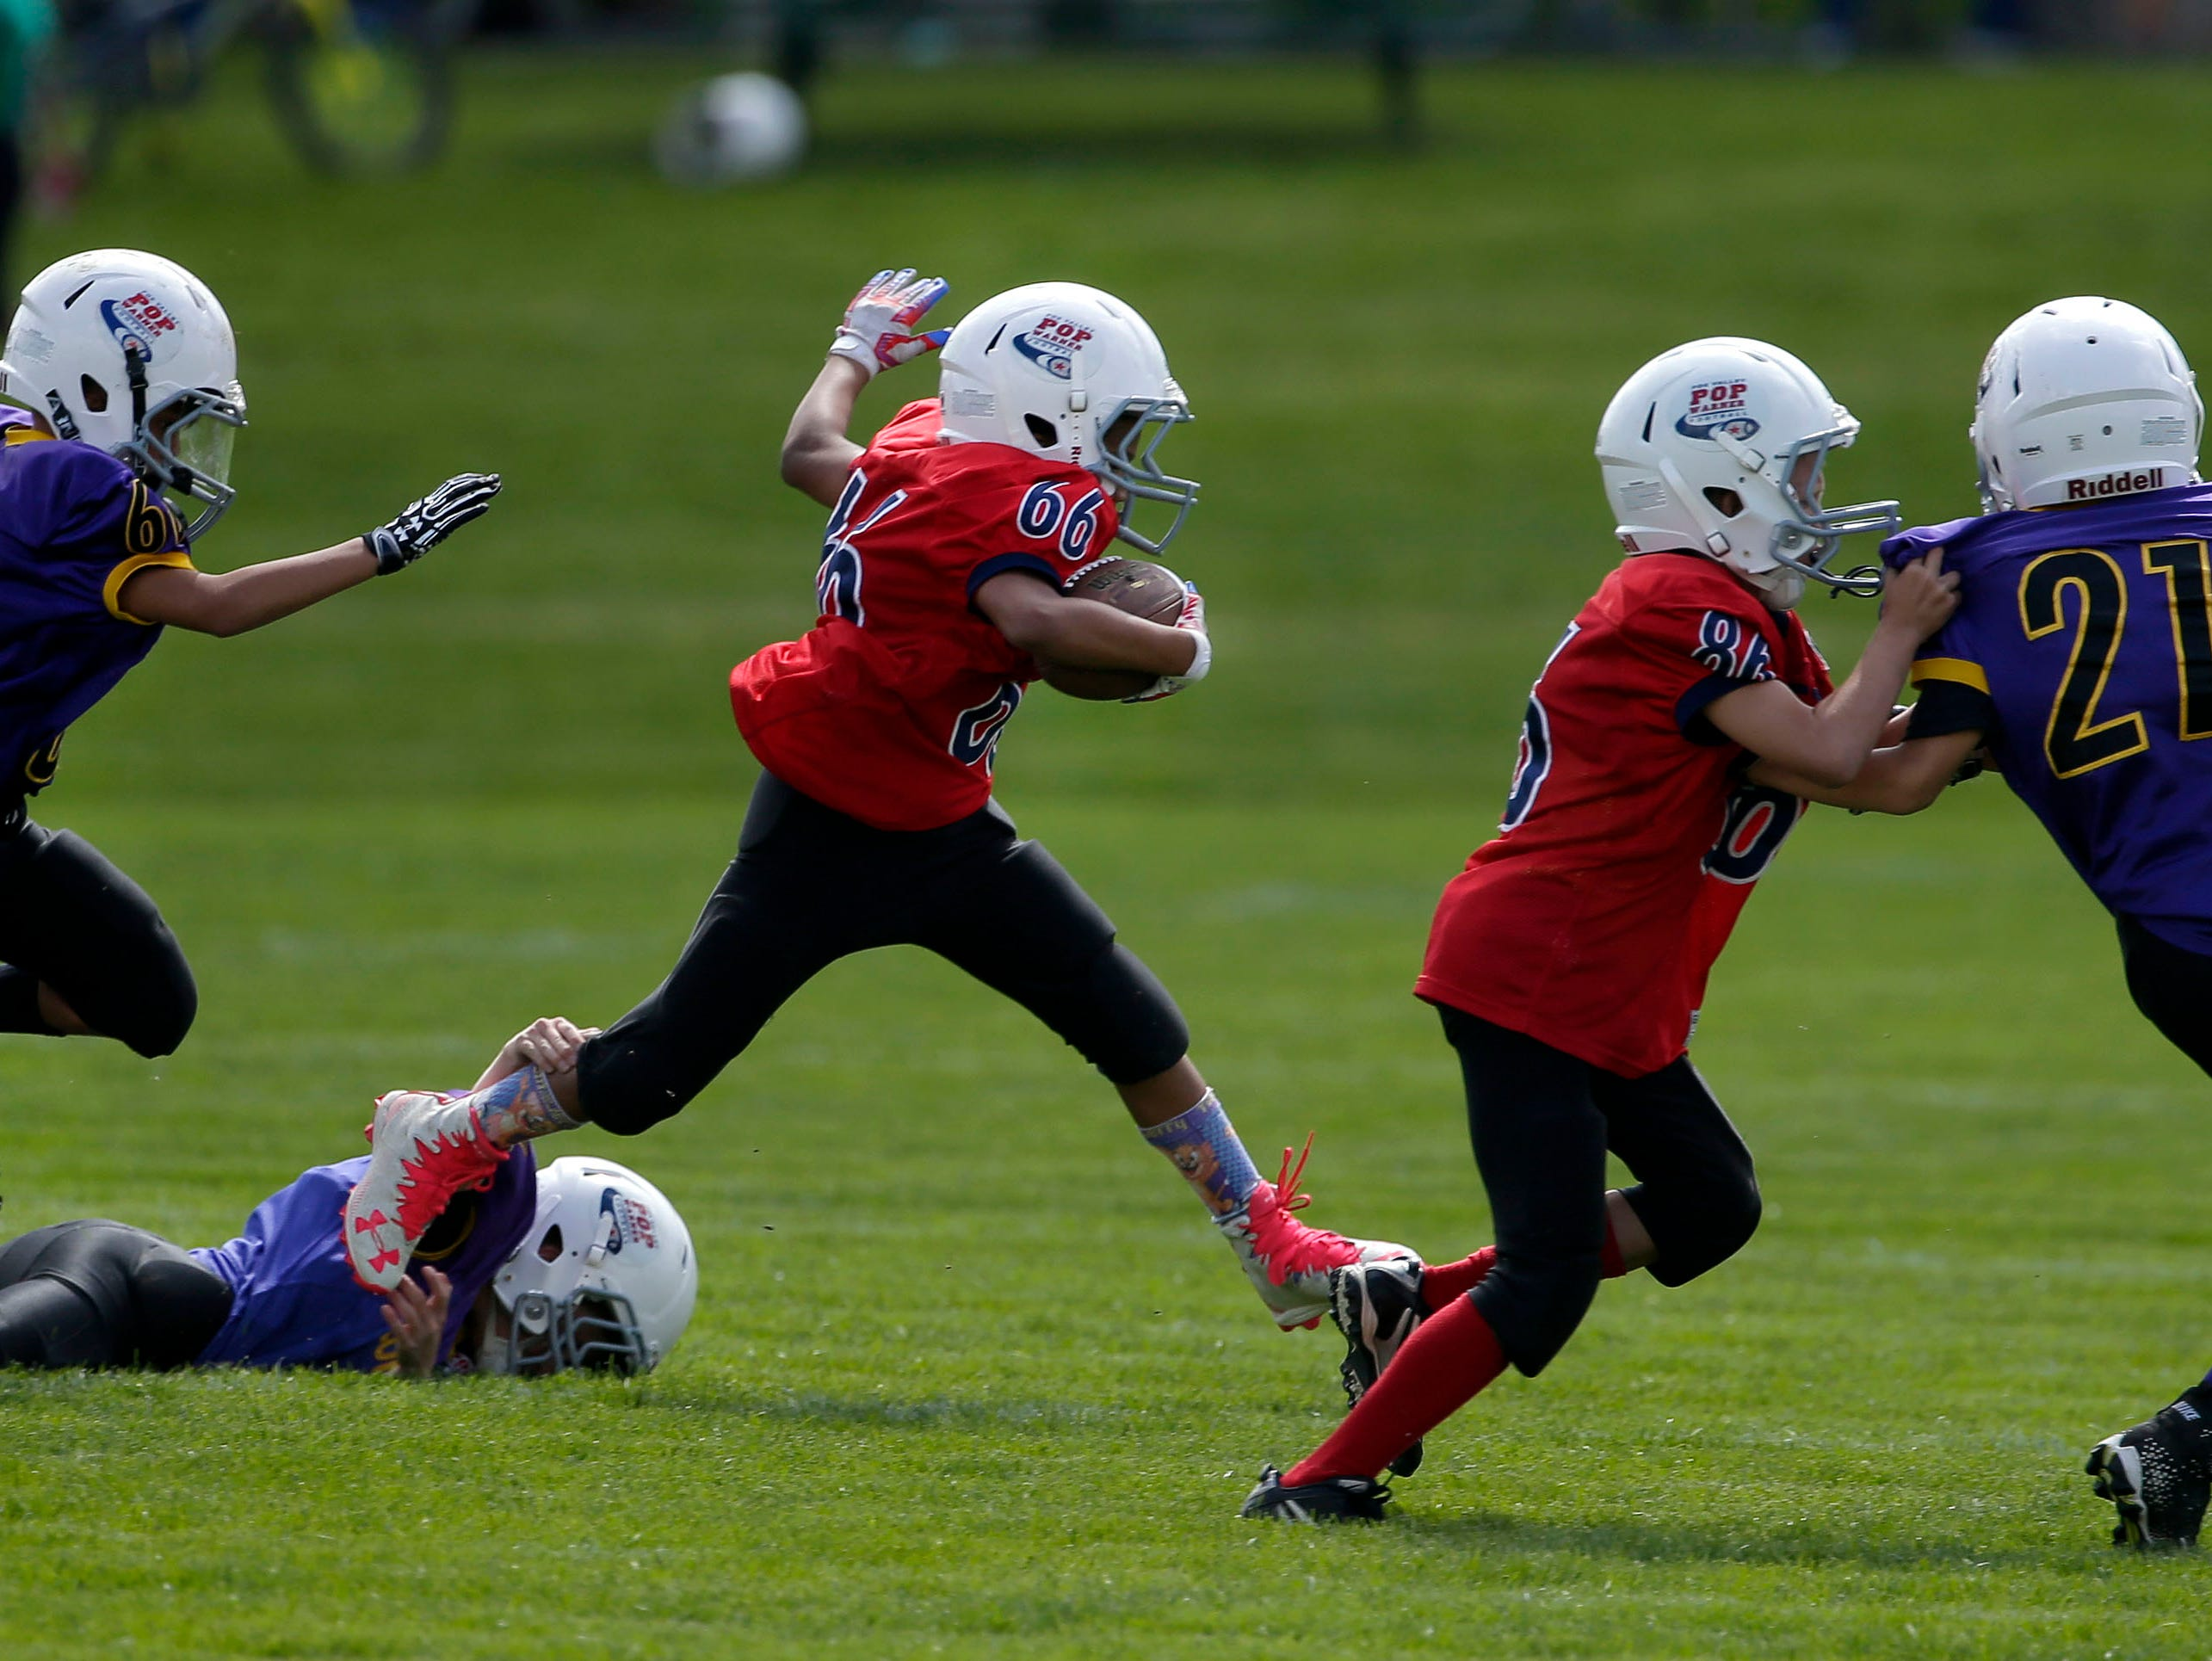 Laythan Hurst carries the ball for the Ghosts against the Cougars as Fox Valley Pop Warner Football opens the season Saturday, September 8, 2018, at Plamann Park in Grand Chute, Wis.Ron Page/USA TODAY NETWORK-Wisconsin